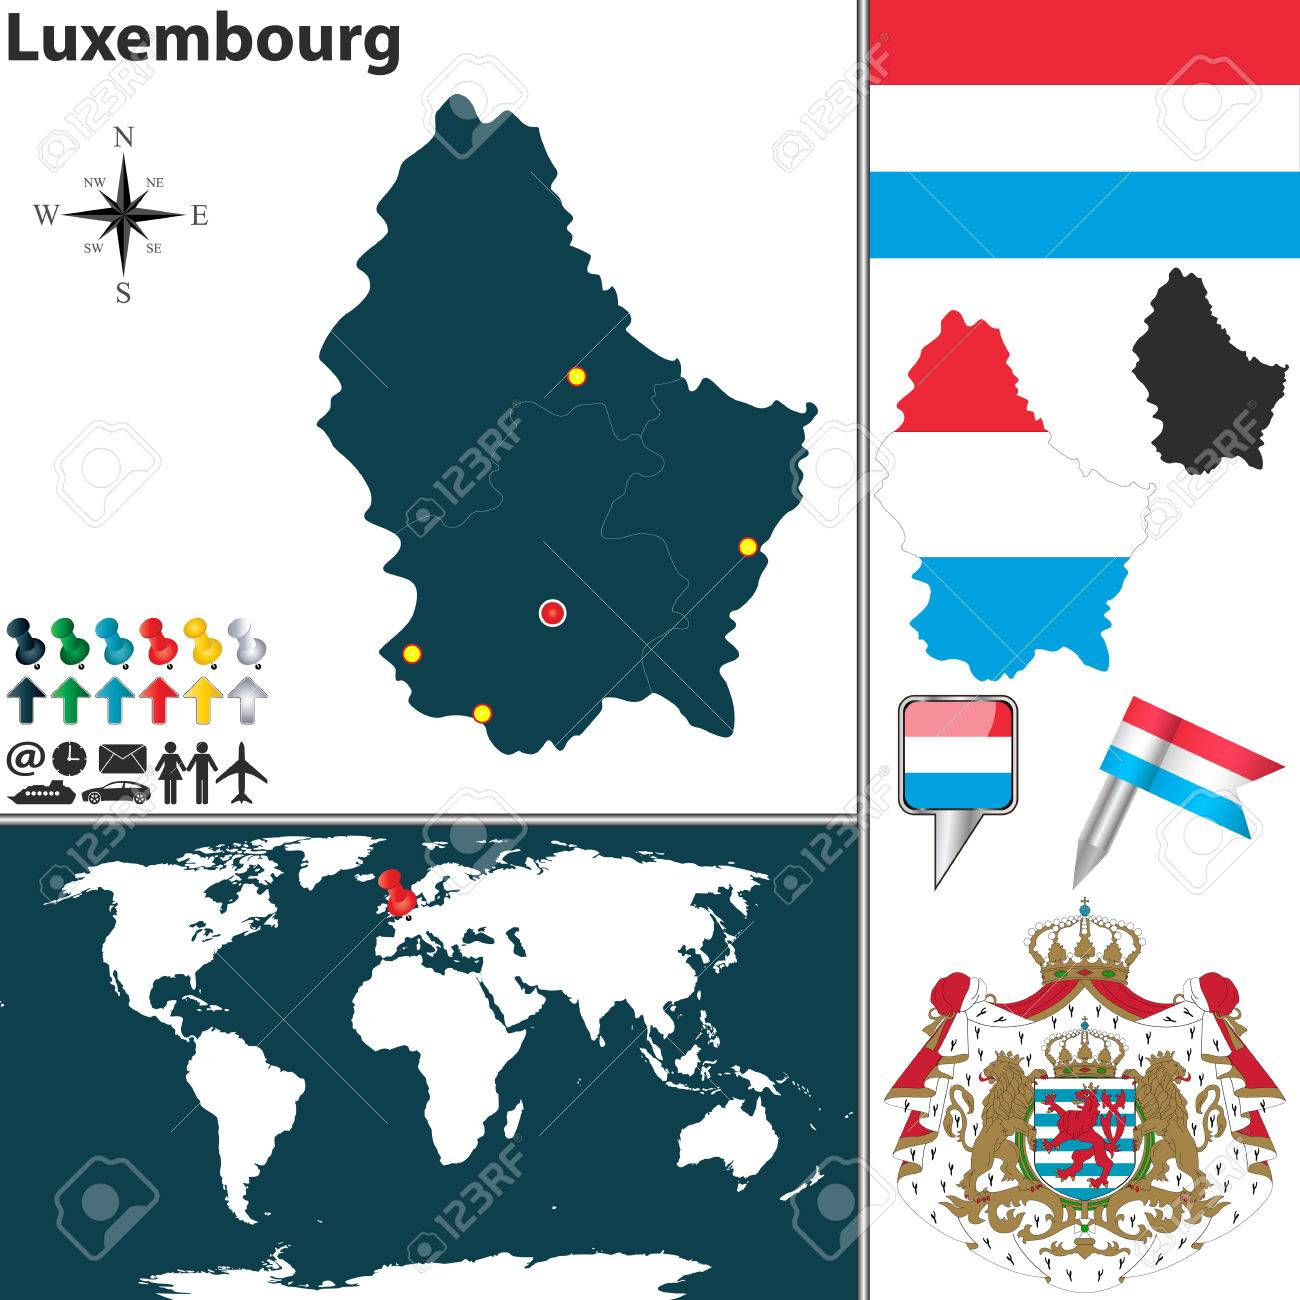 map of Luxembourg with coat of arms and location on world map